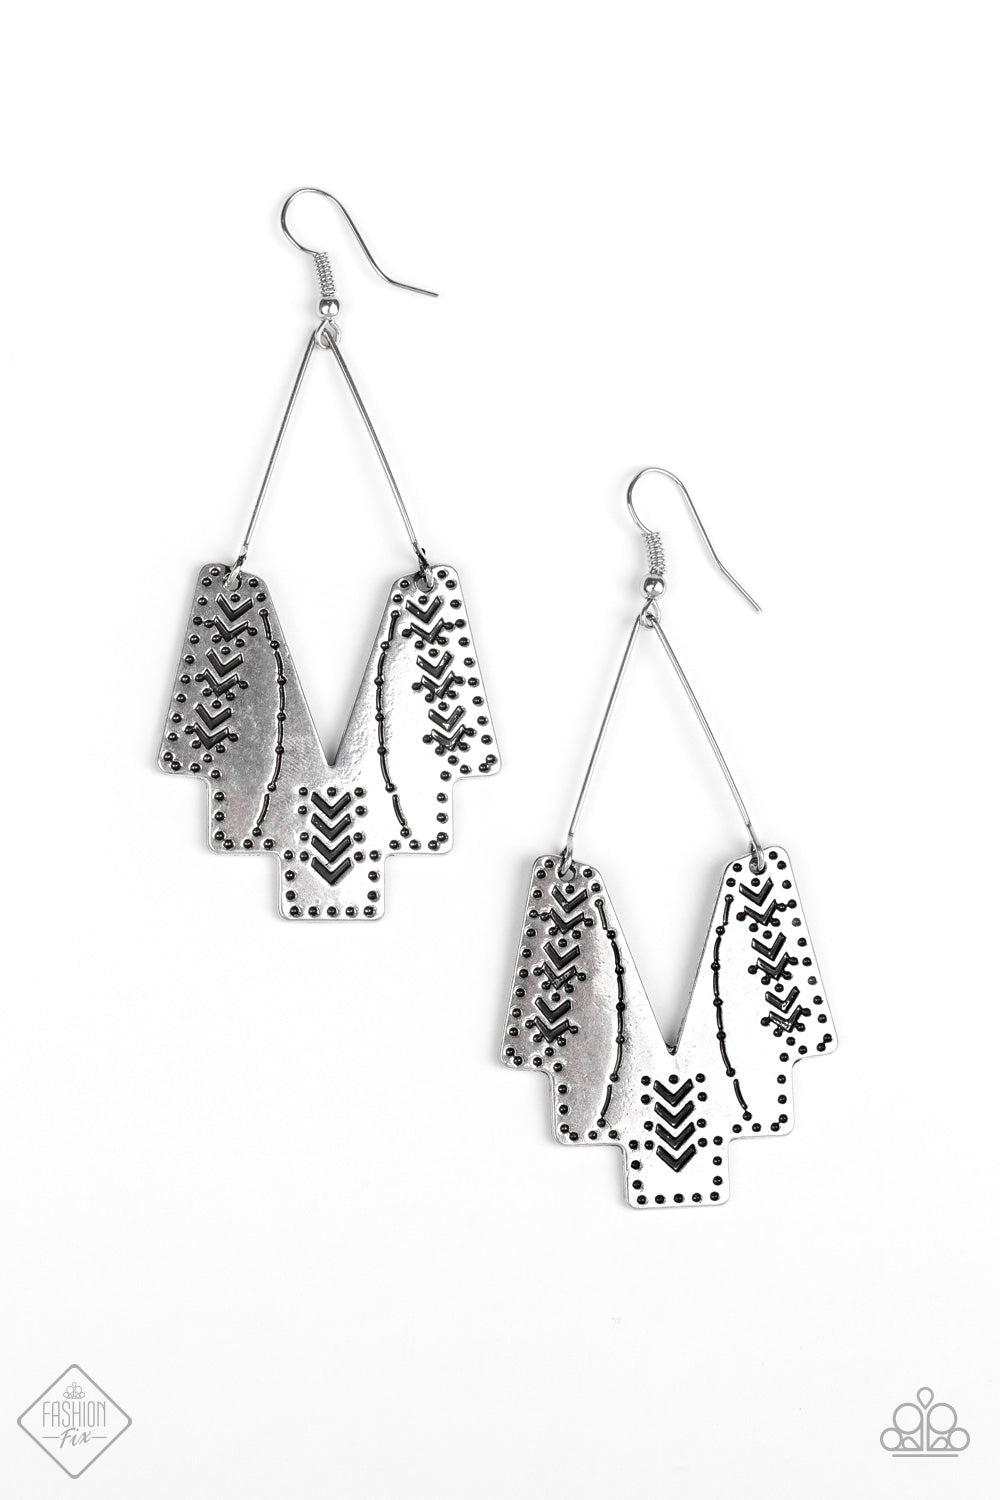 Arizona Adobe Earrings